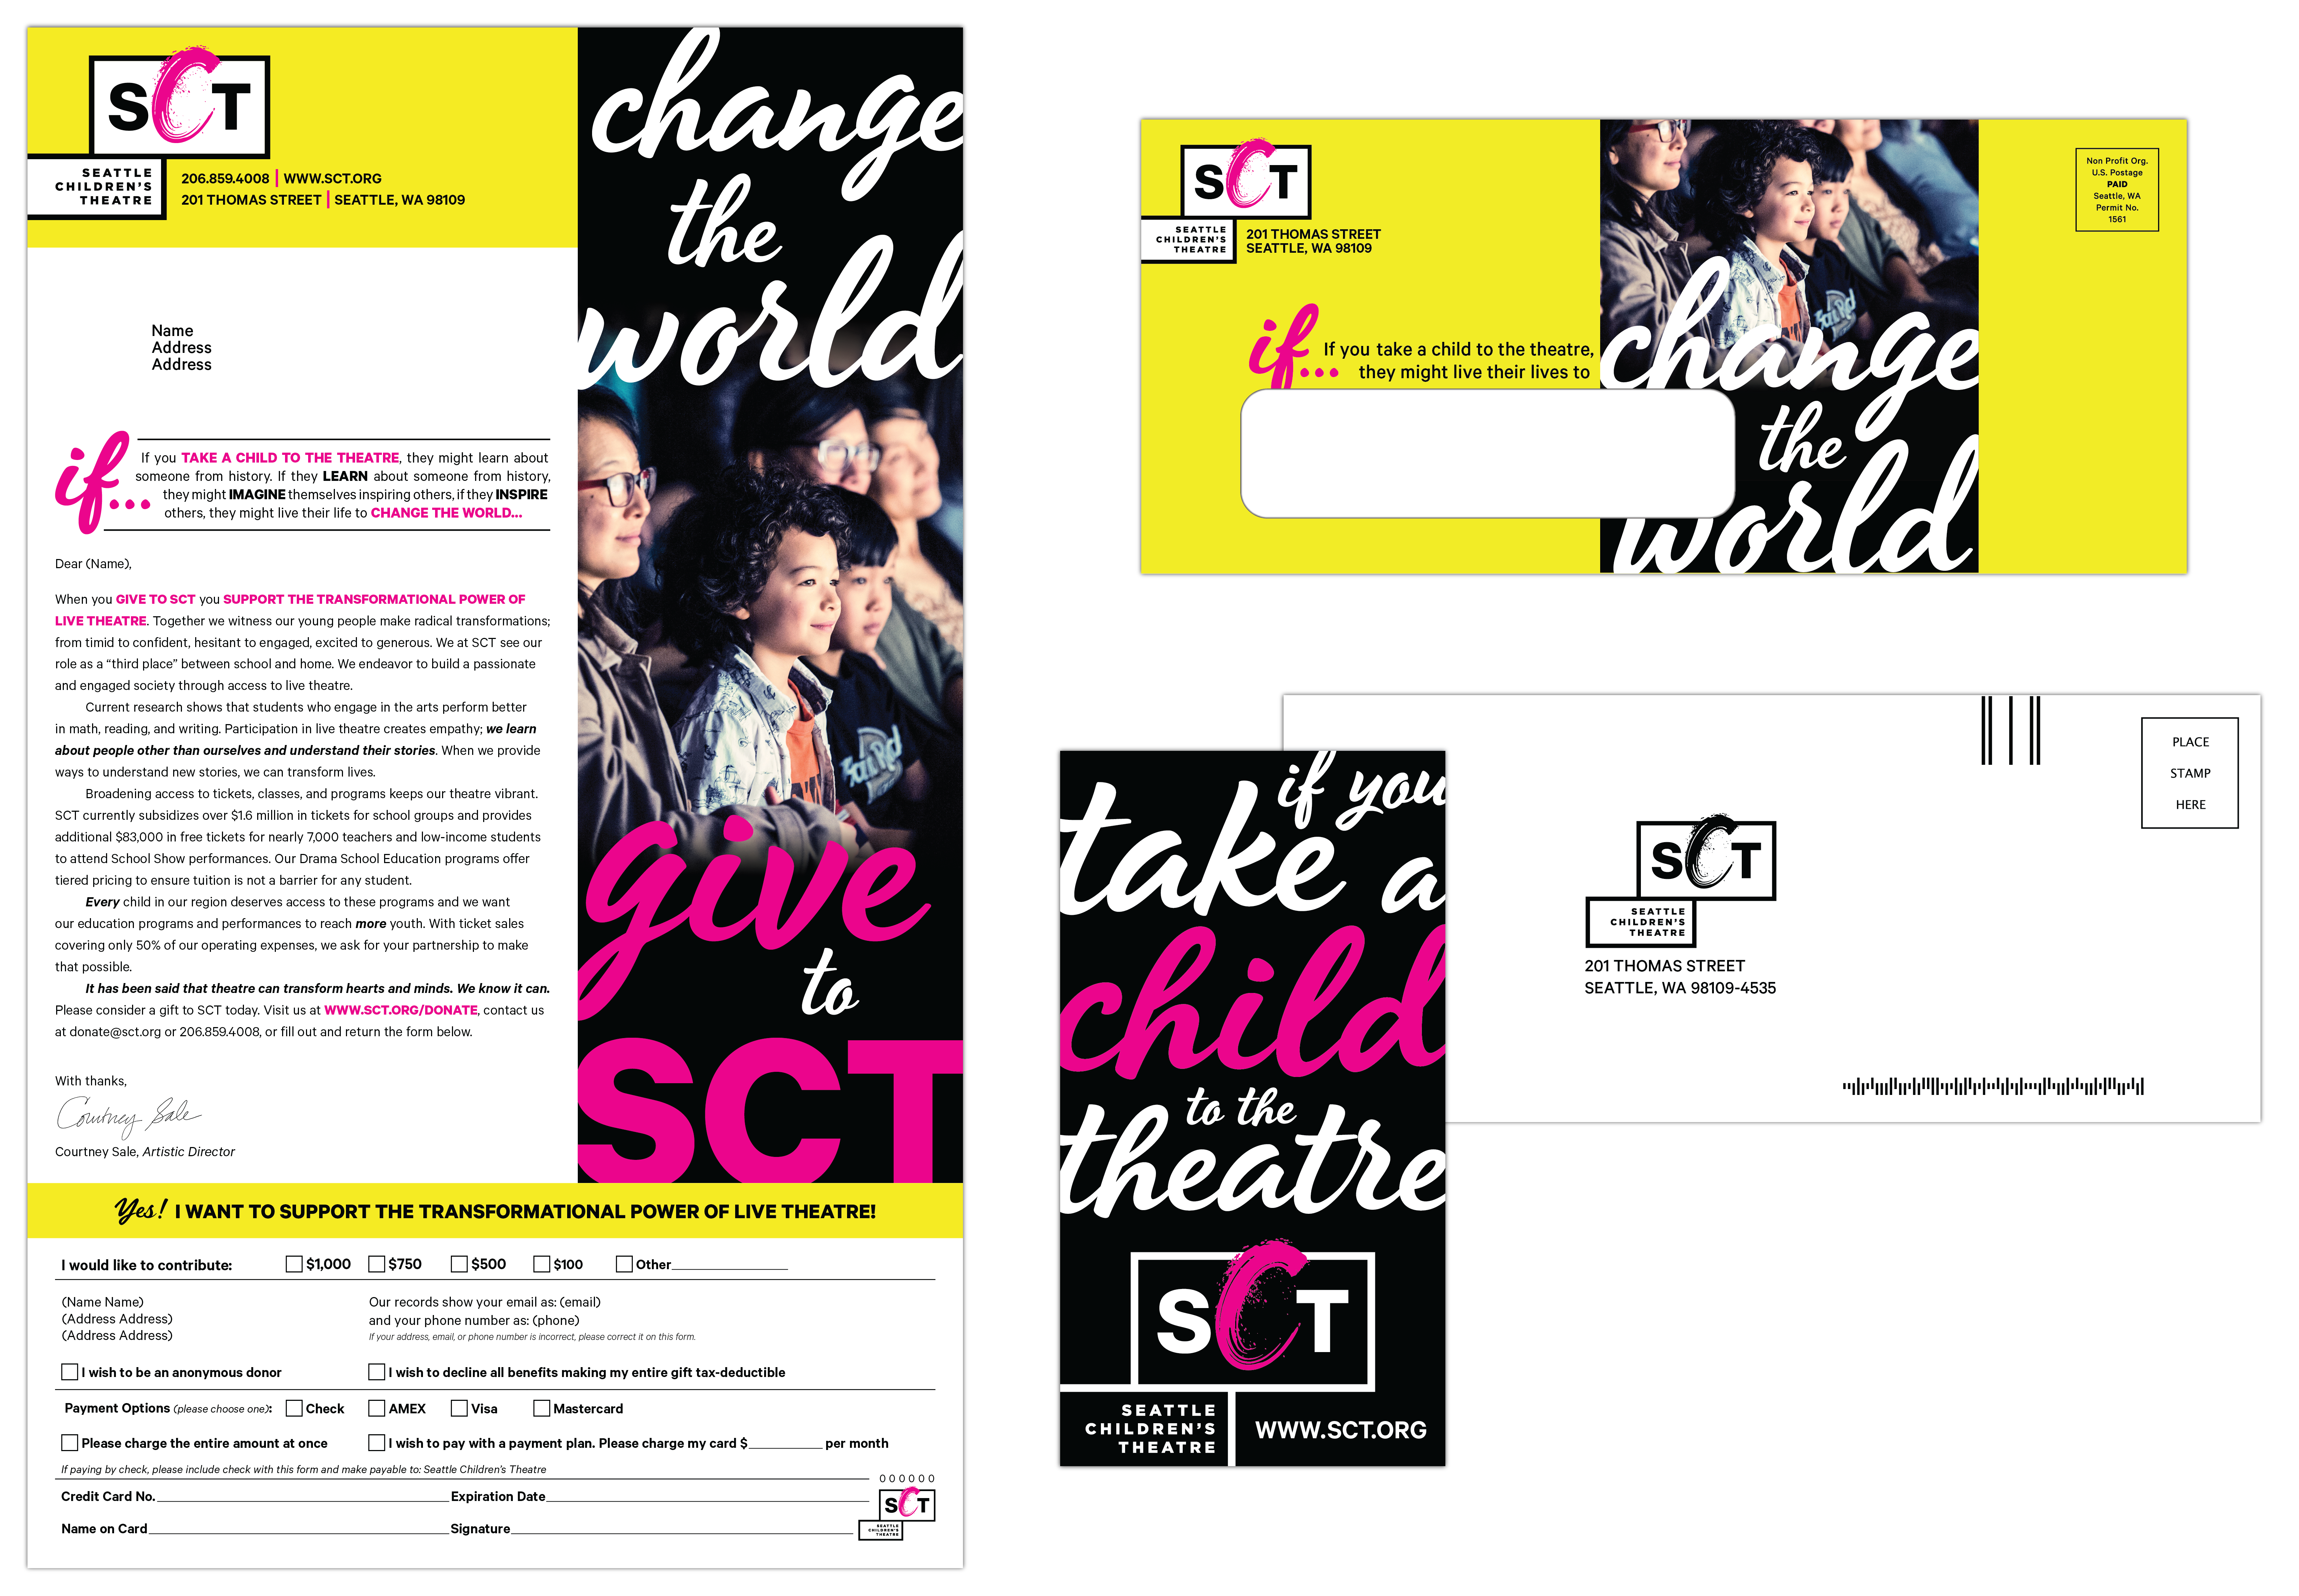 Seattle Children's Theatre, Spring 2019 Development Campaign, with included sticker giveaway.